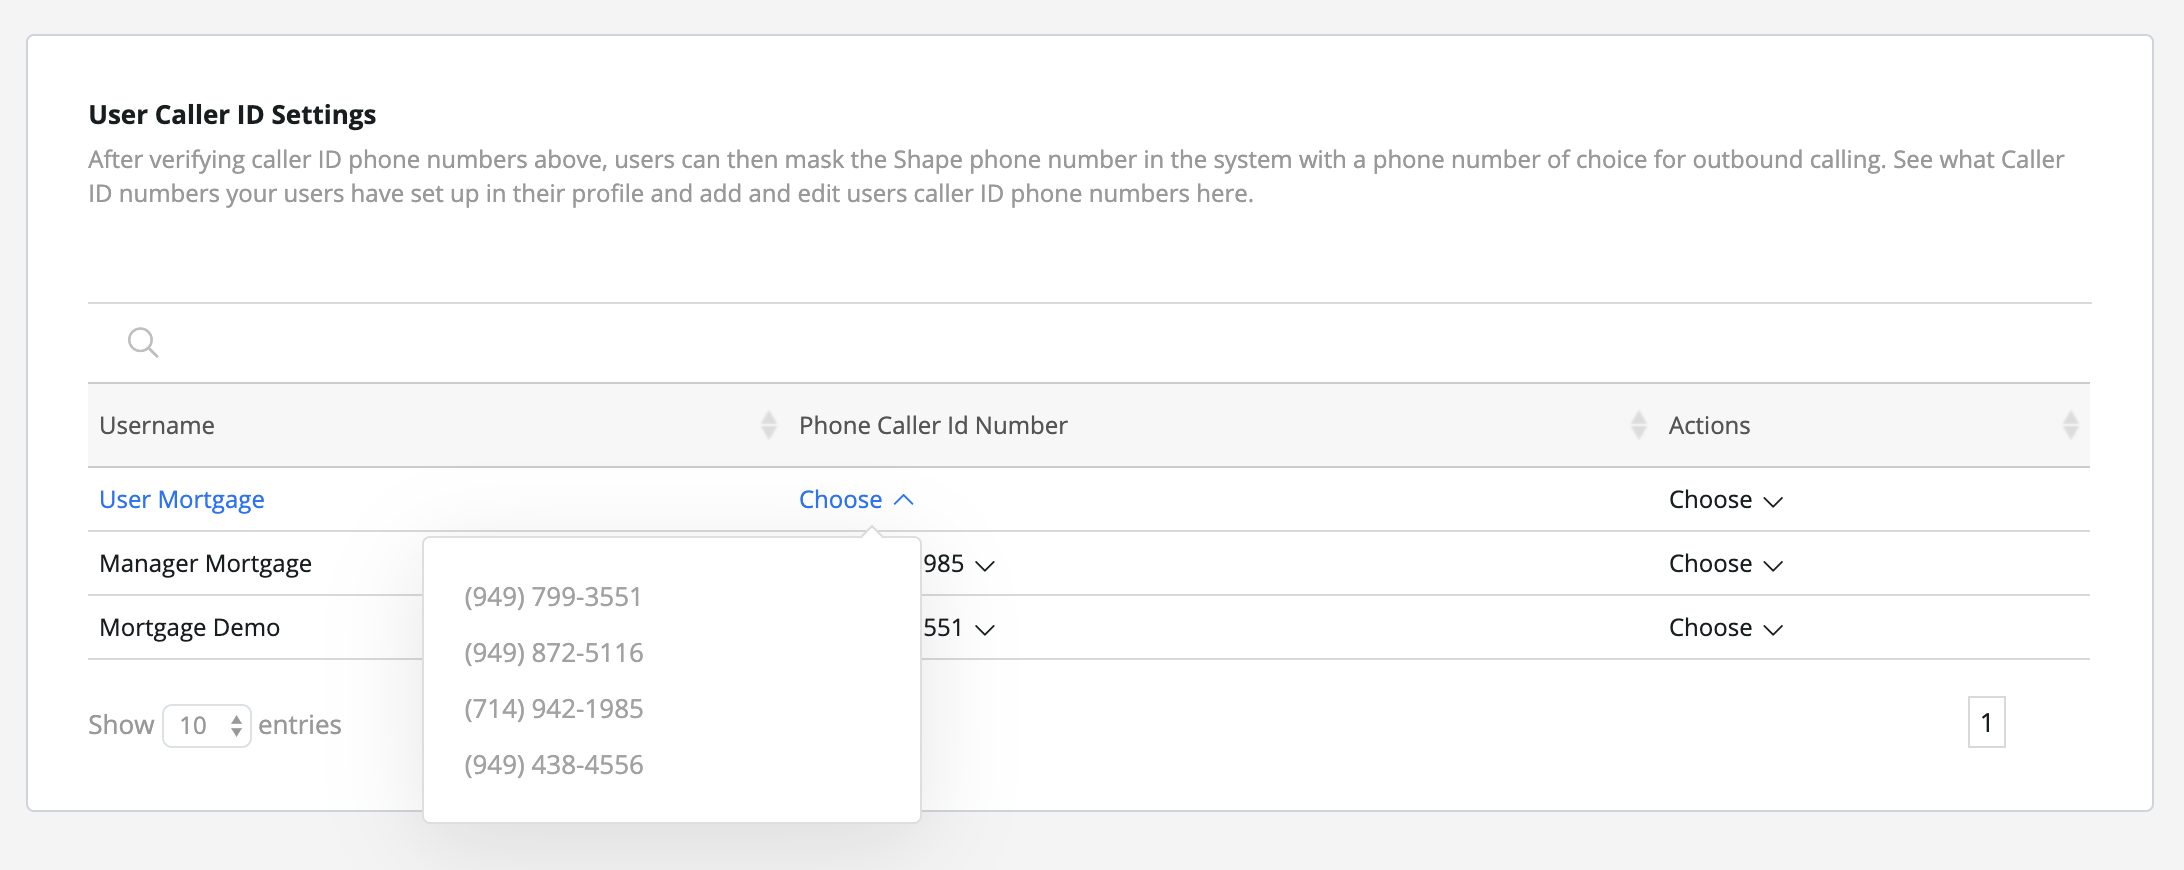 Step 9:  After verifying caller ID phone numbers above, choose what phone numbers your users are using for outbound caller ID.